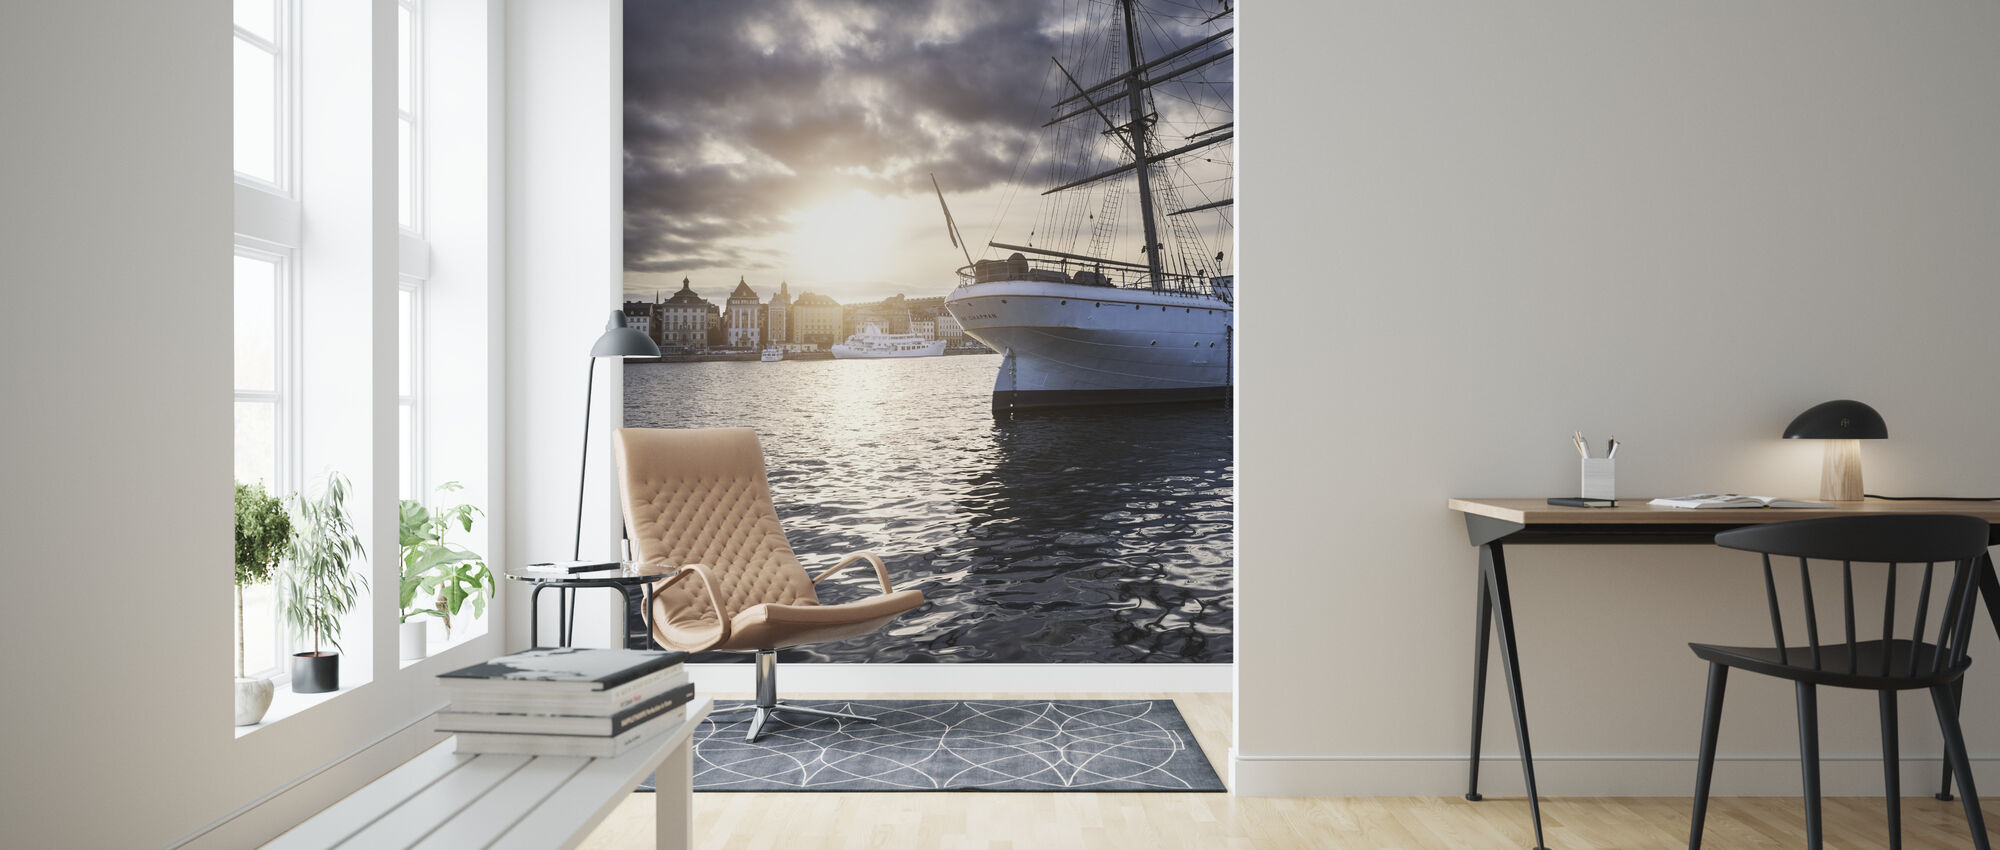 Sunset Sailboat - Wallpaper - Living Room